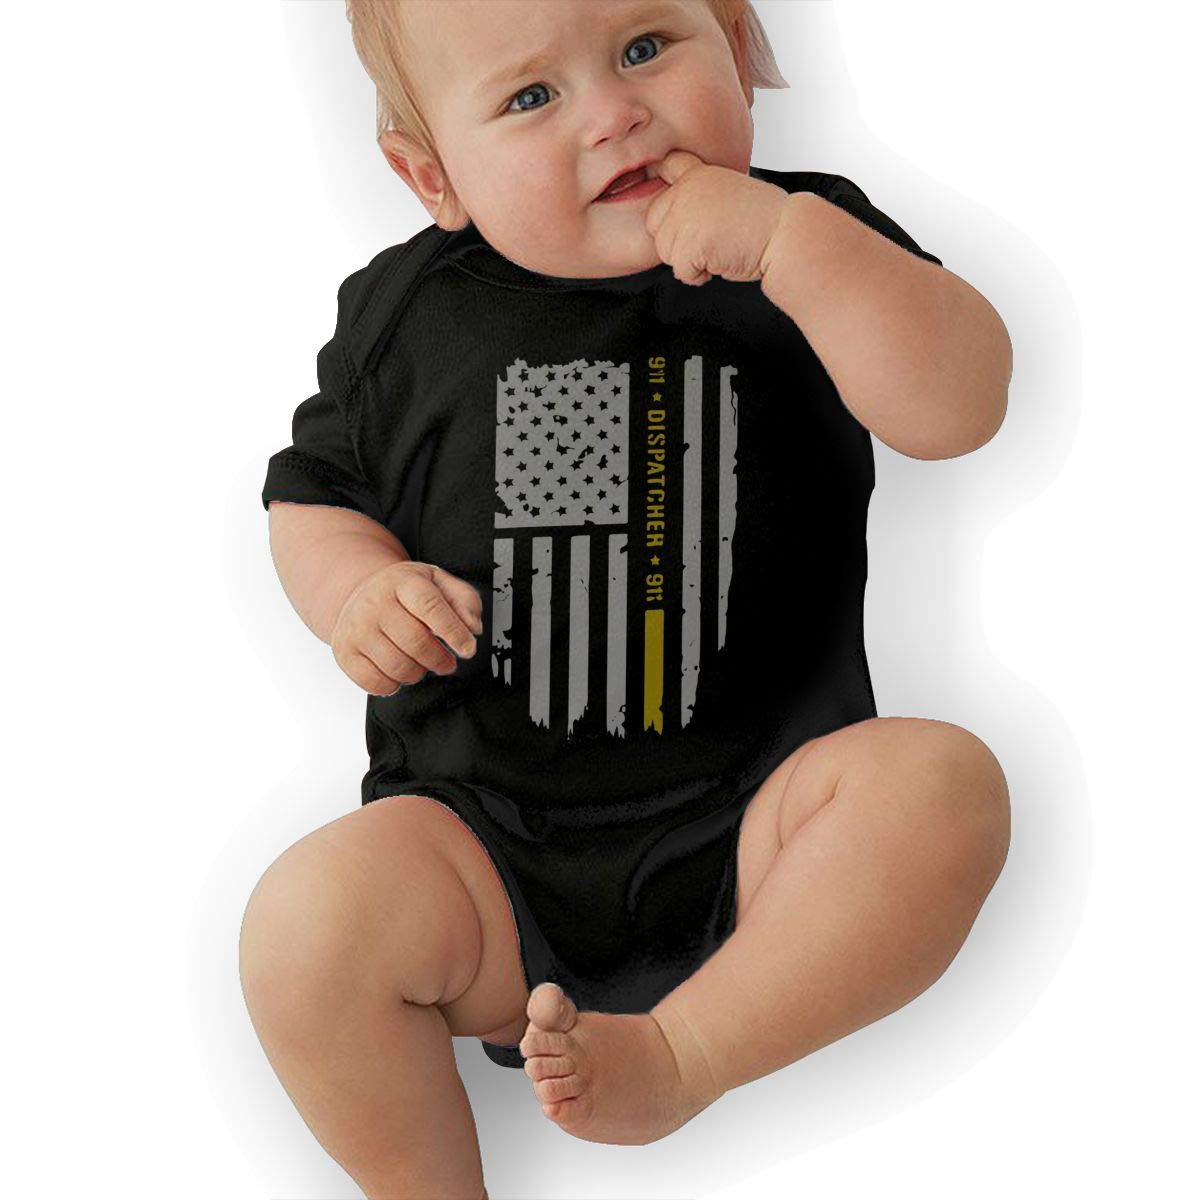 Soft 911 Dispatcher Thin Gold Line Crawler U88oi-8 Short Sleeve Cotton Rompers for Unisex Baby